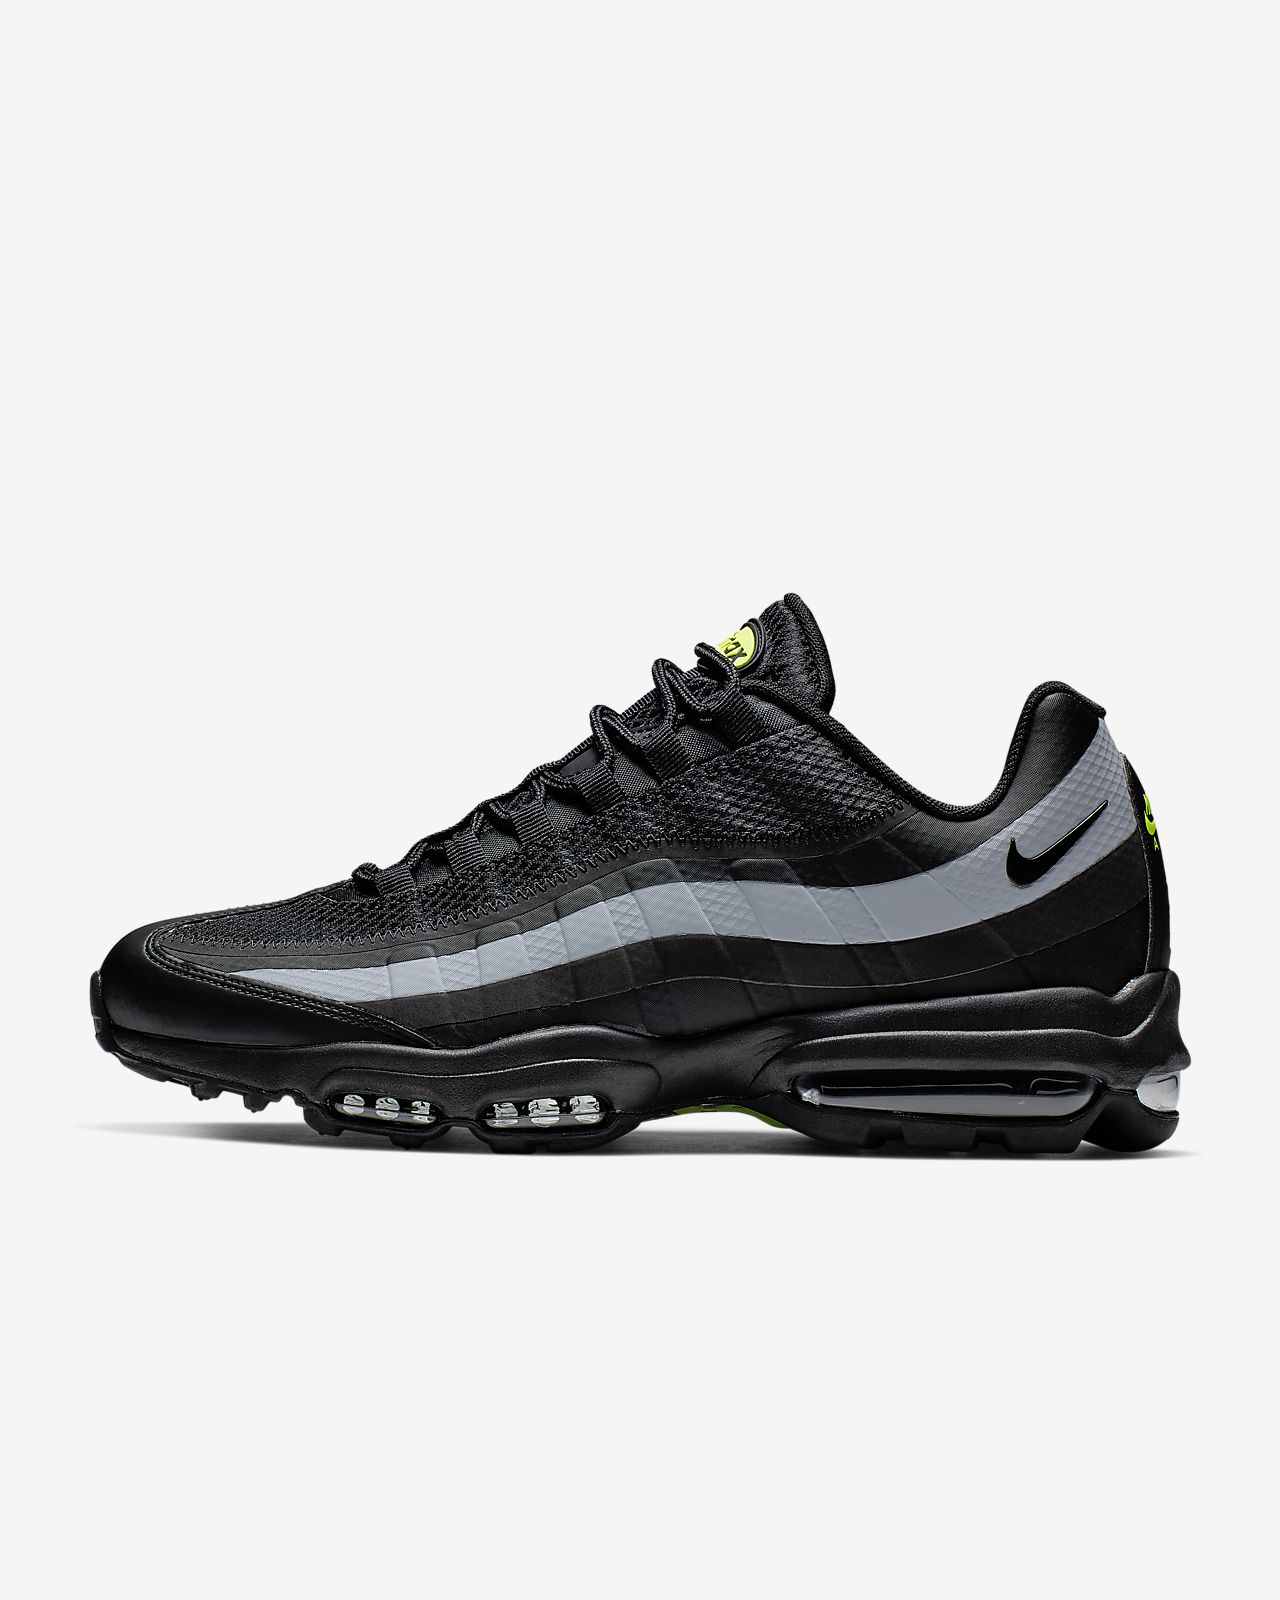 designer fashion bd06b 7ea42 Nike Air Max 95 Ultra Men's Shoe. Nike.com DK